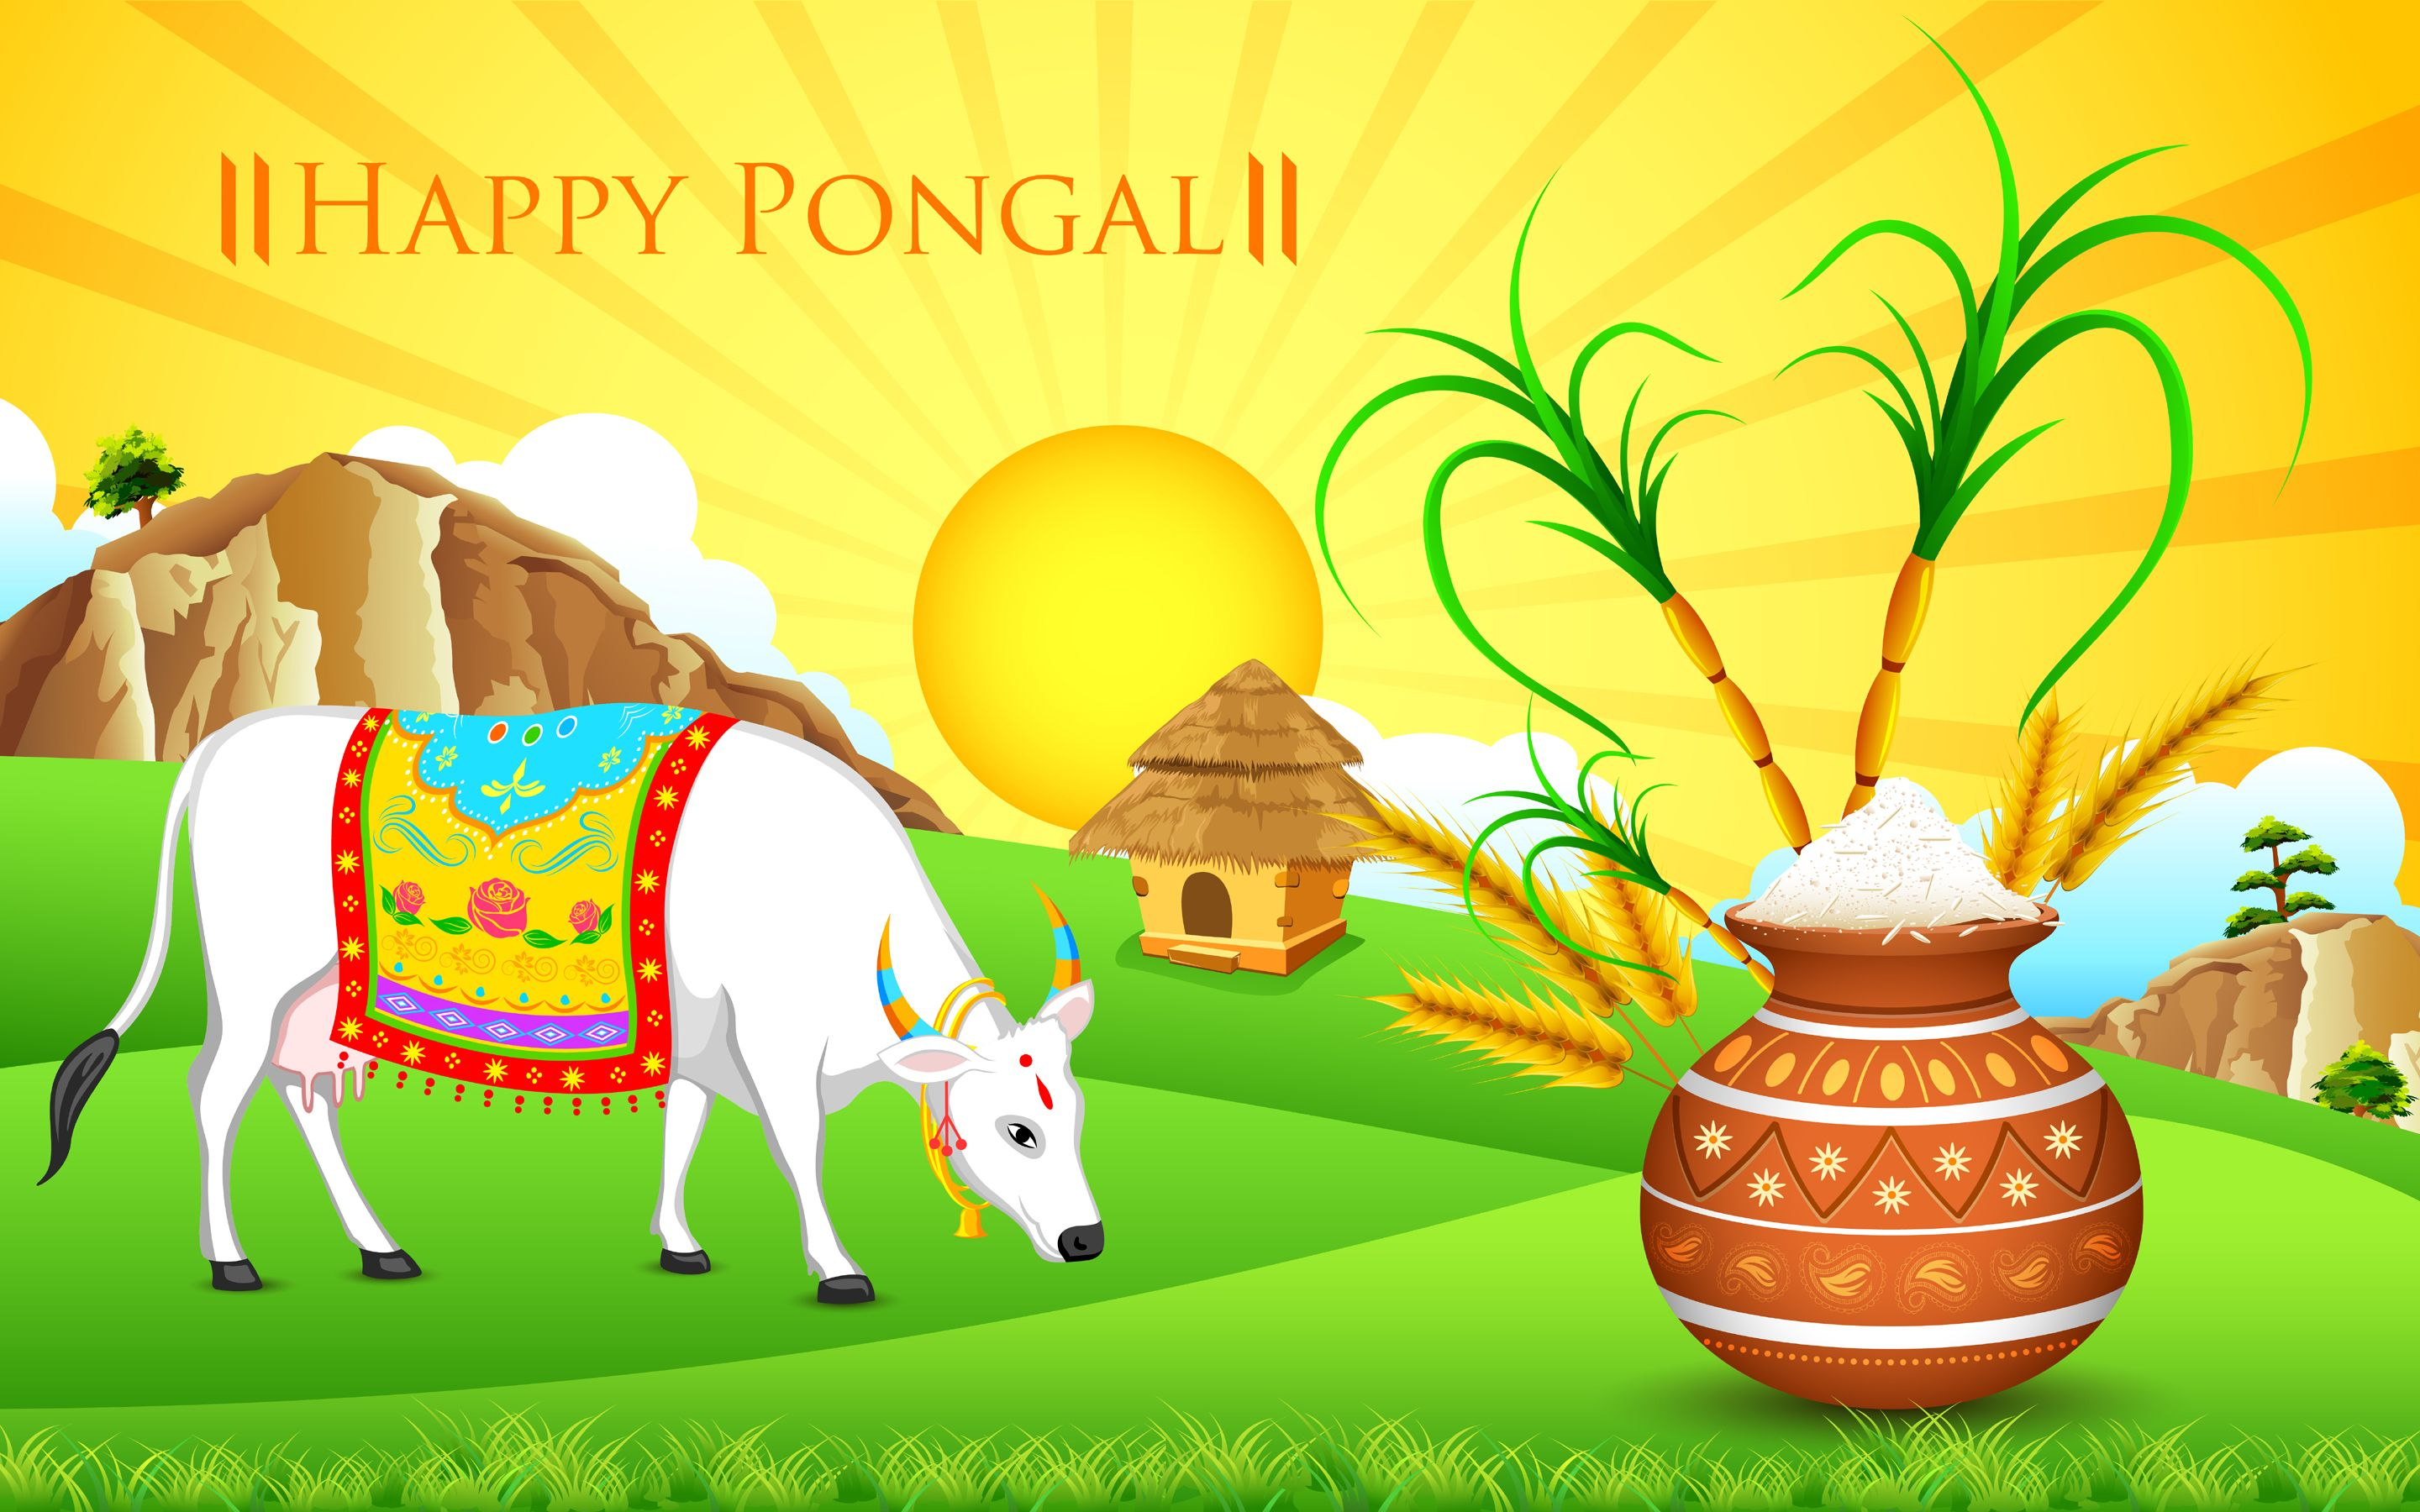 Happy Pongal Festival Wishes Lovely Desktop Wallpaper Happy Pongal